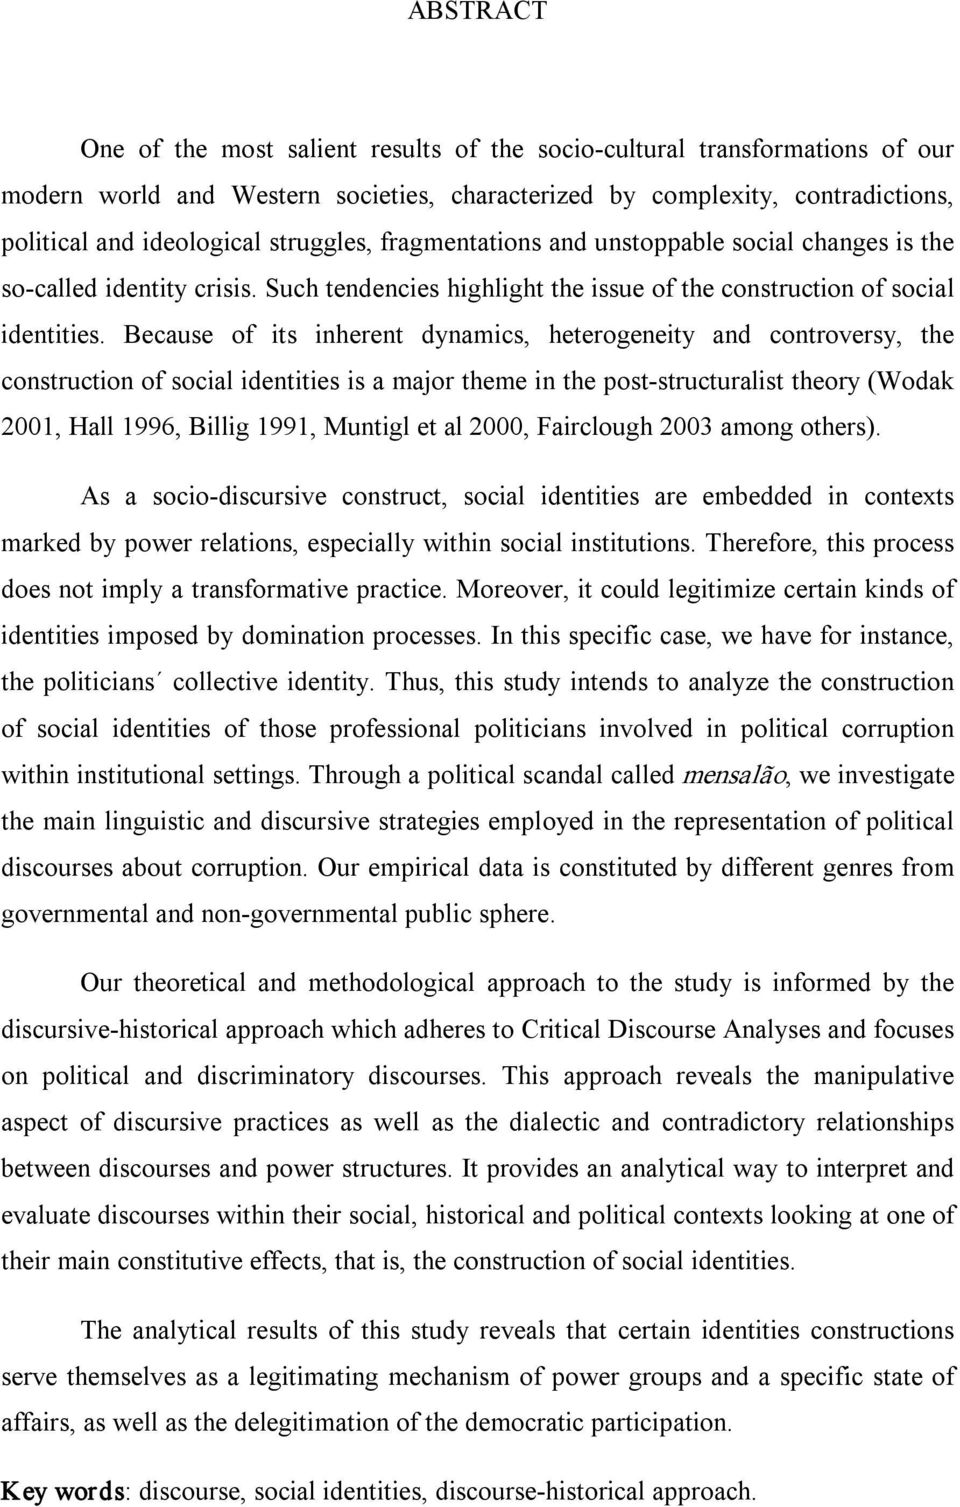 Because of its inherent dynamics, heterogeneity and controversy, the construction of social identities is a major theme in the post structuralist theory (Wodak 2001, Hall 1996, Billig 1991, Muntigl